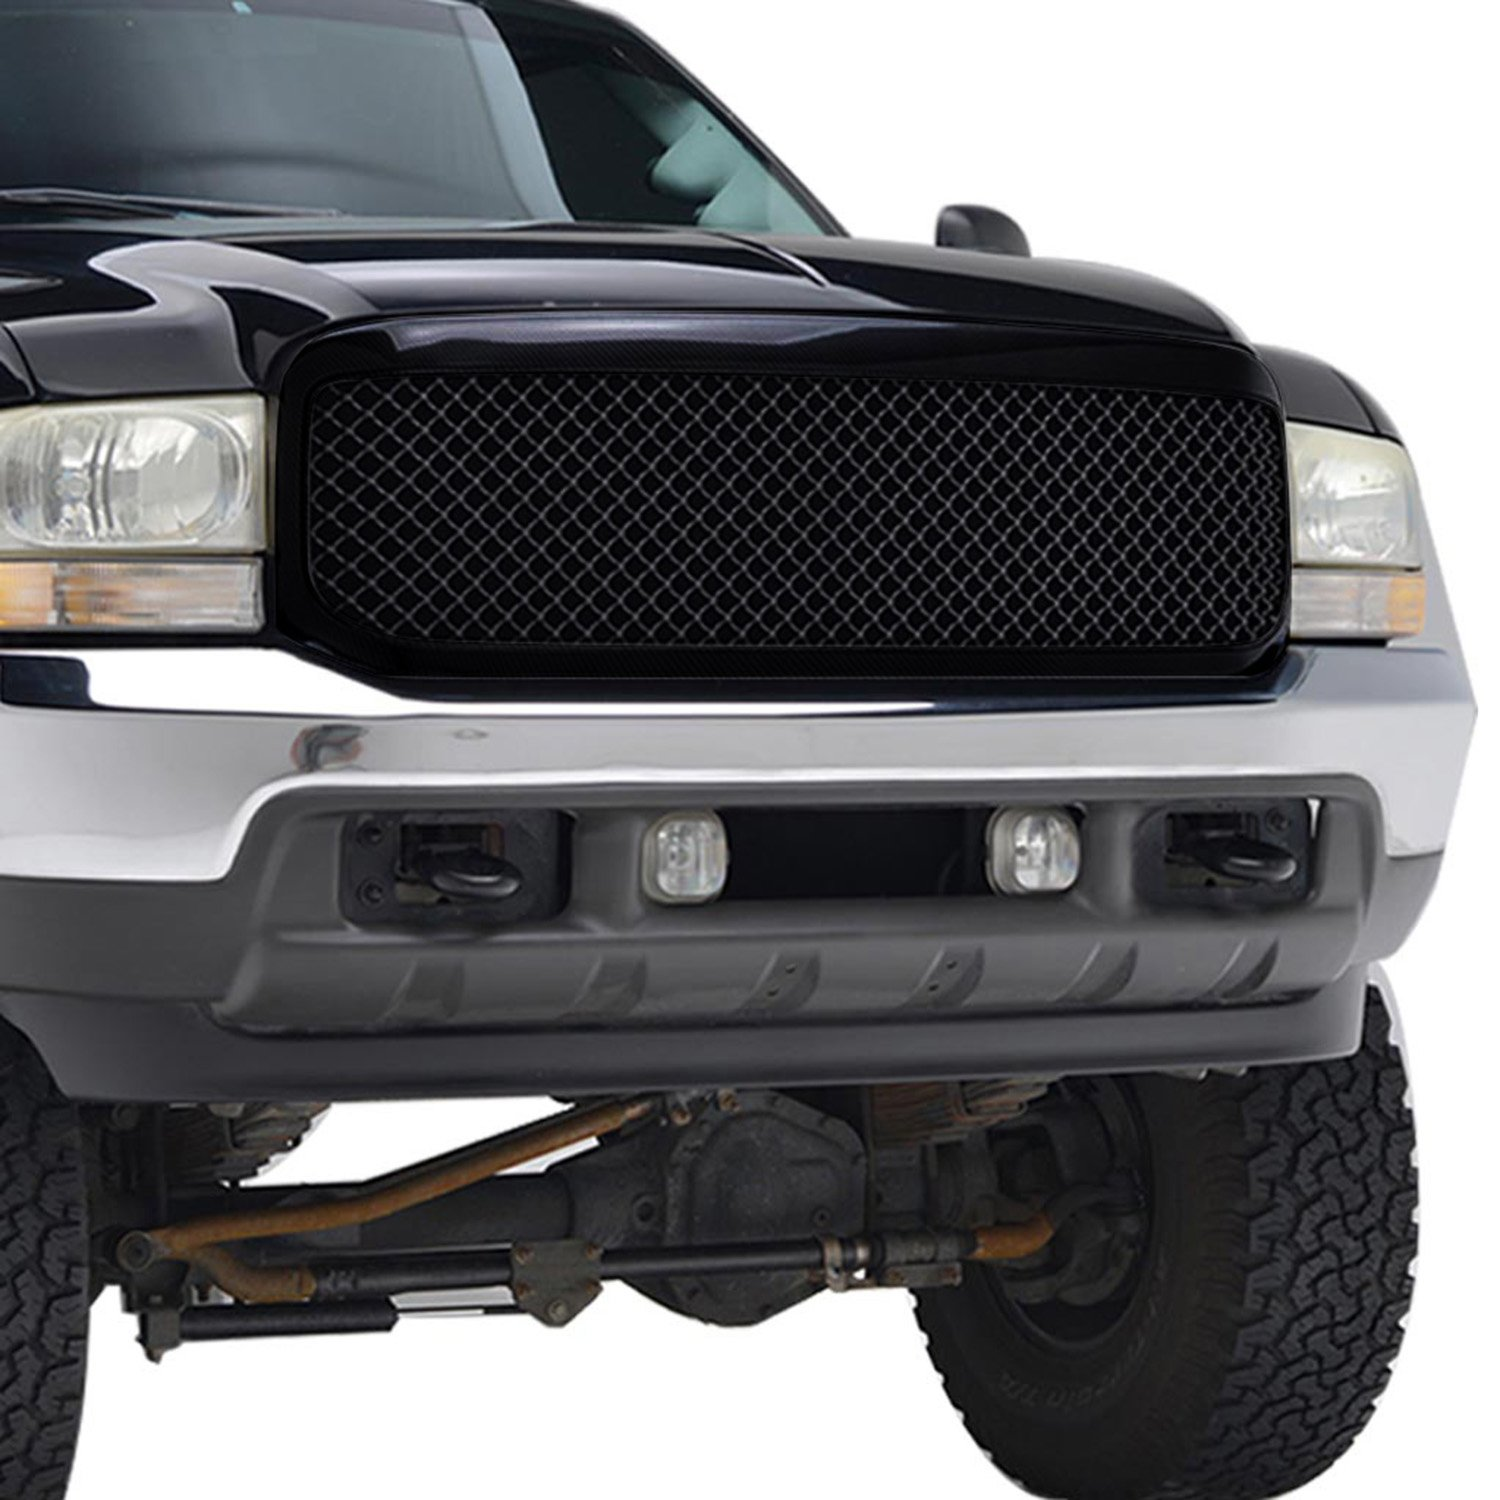 Eag 99 04 Ford F 250 350 Super Duty Replacement 2004 Black Grill Grille Abs With Shell Automotive